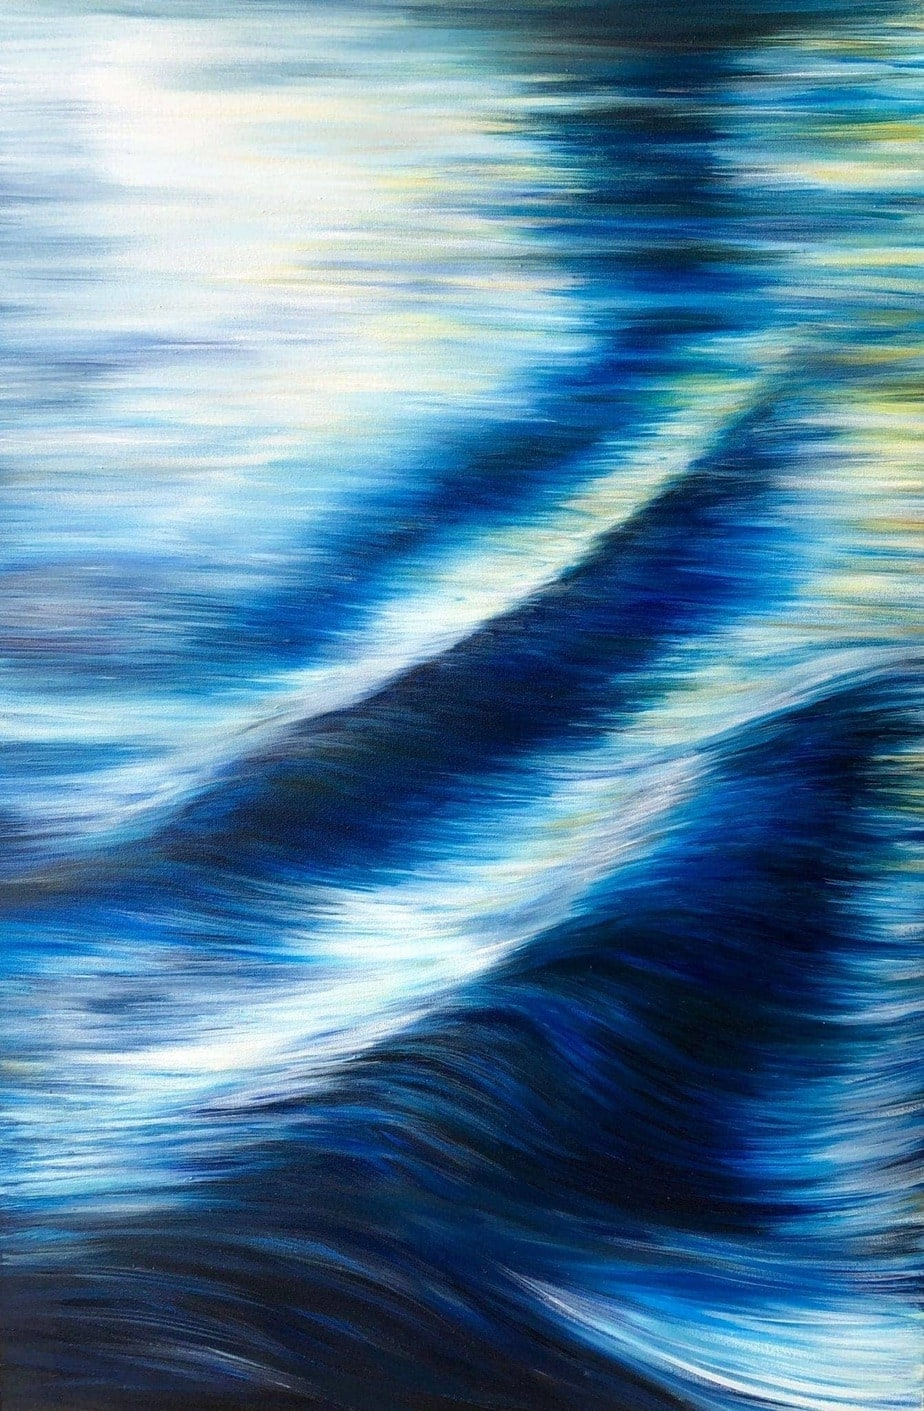 """""""Languid River"""" is an original oil on canvas painting of ripples in a slow flowing river current 60 x 80 cm £350 by Devon based artist Catherine Kennedy. Blues, white and yellows are the predominant colours."""